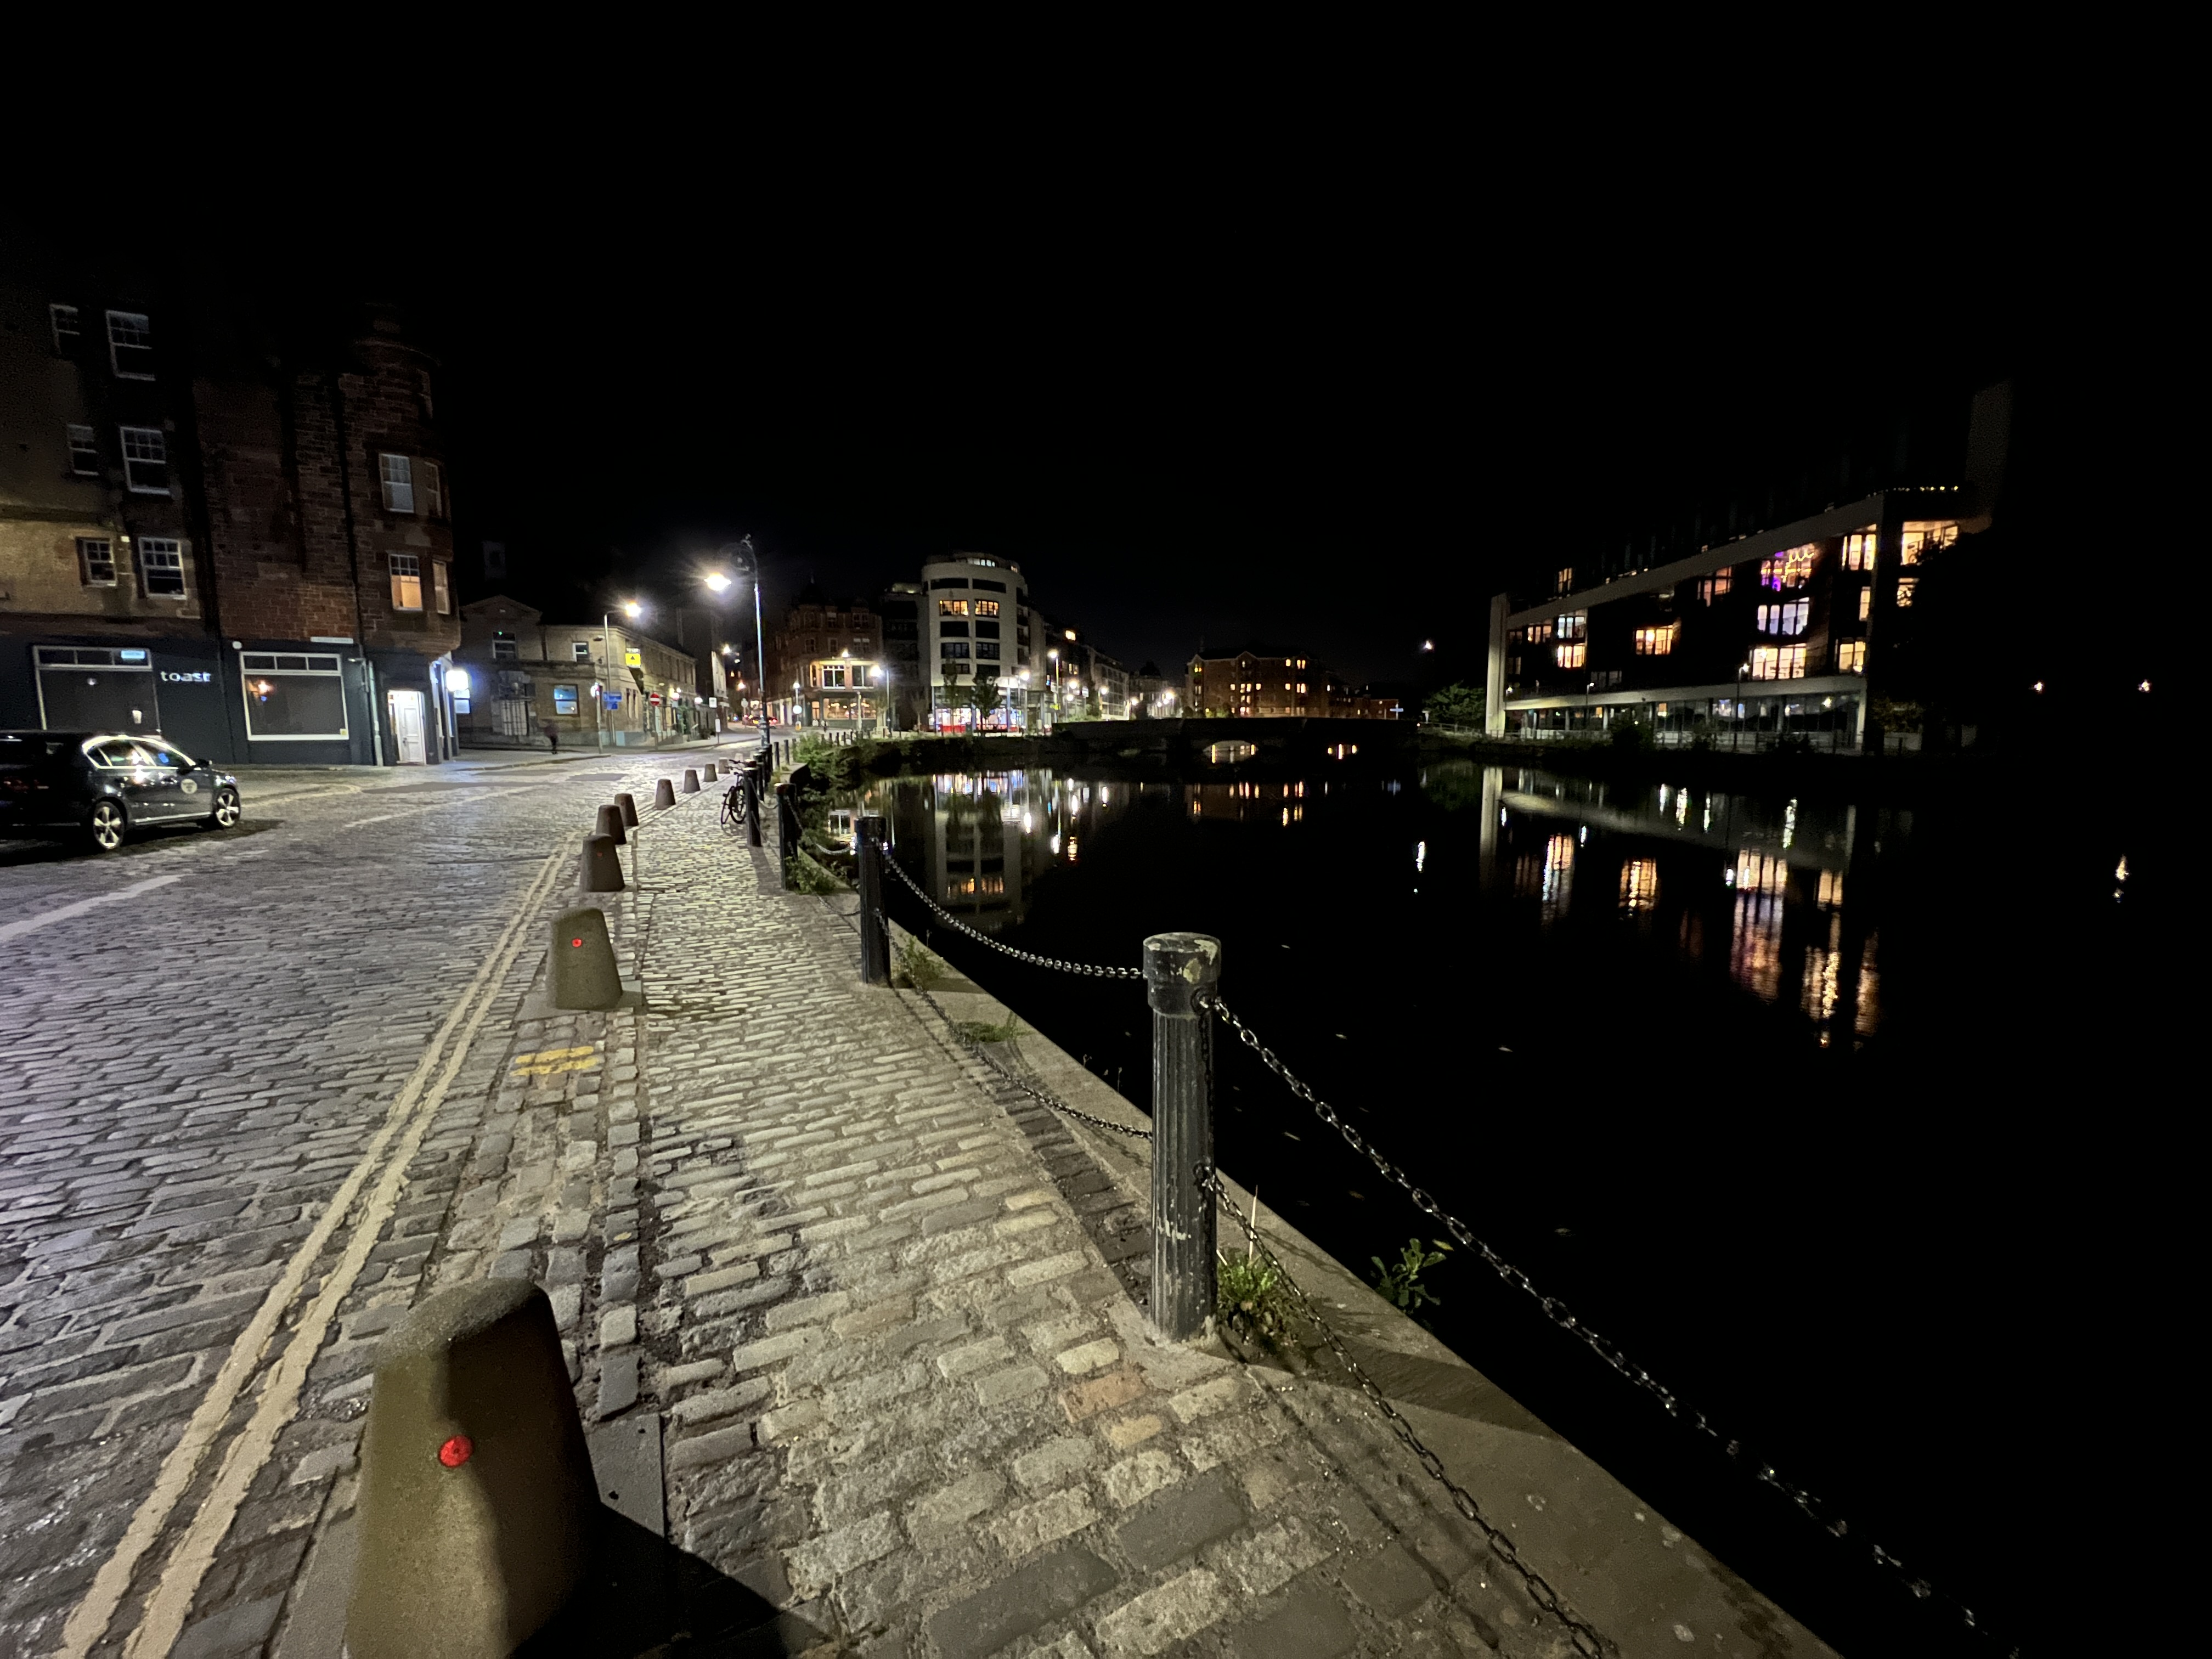 leith-wide-night-mode-iphone-13-pro